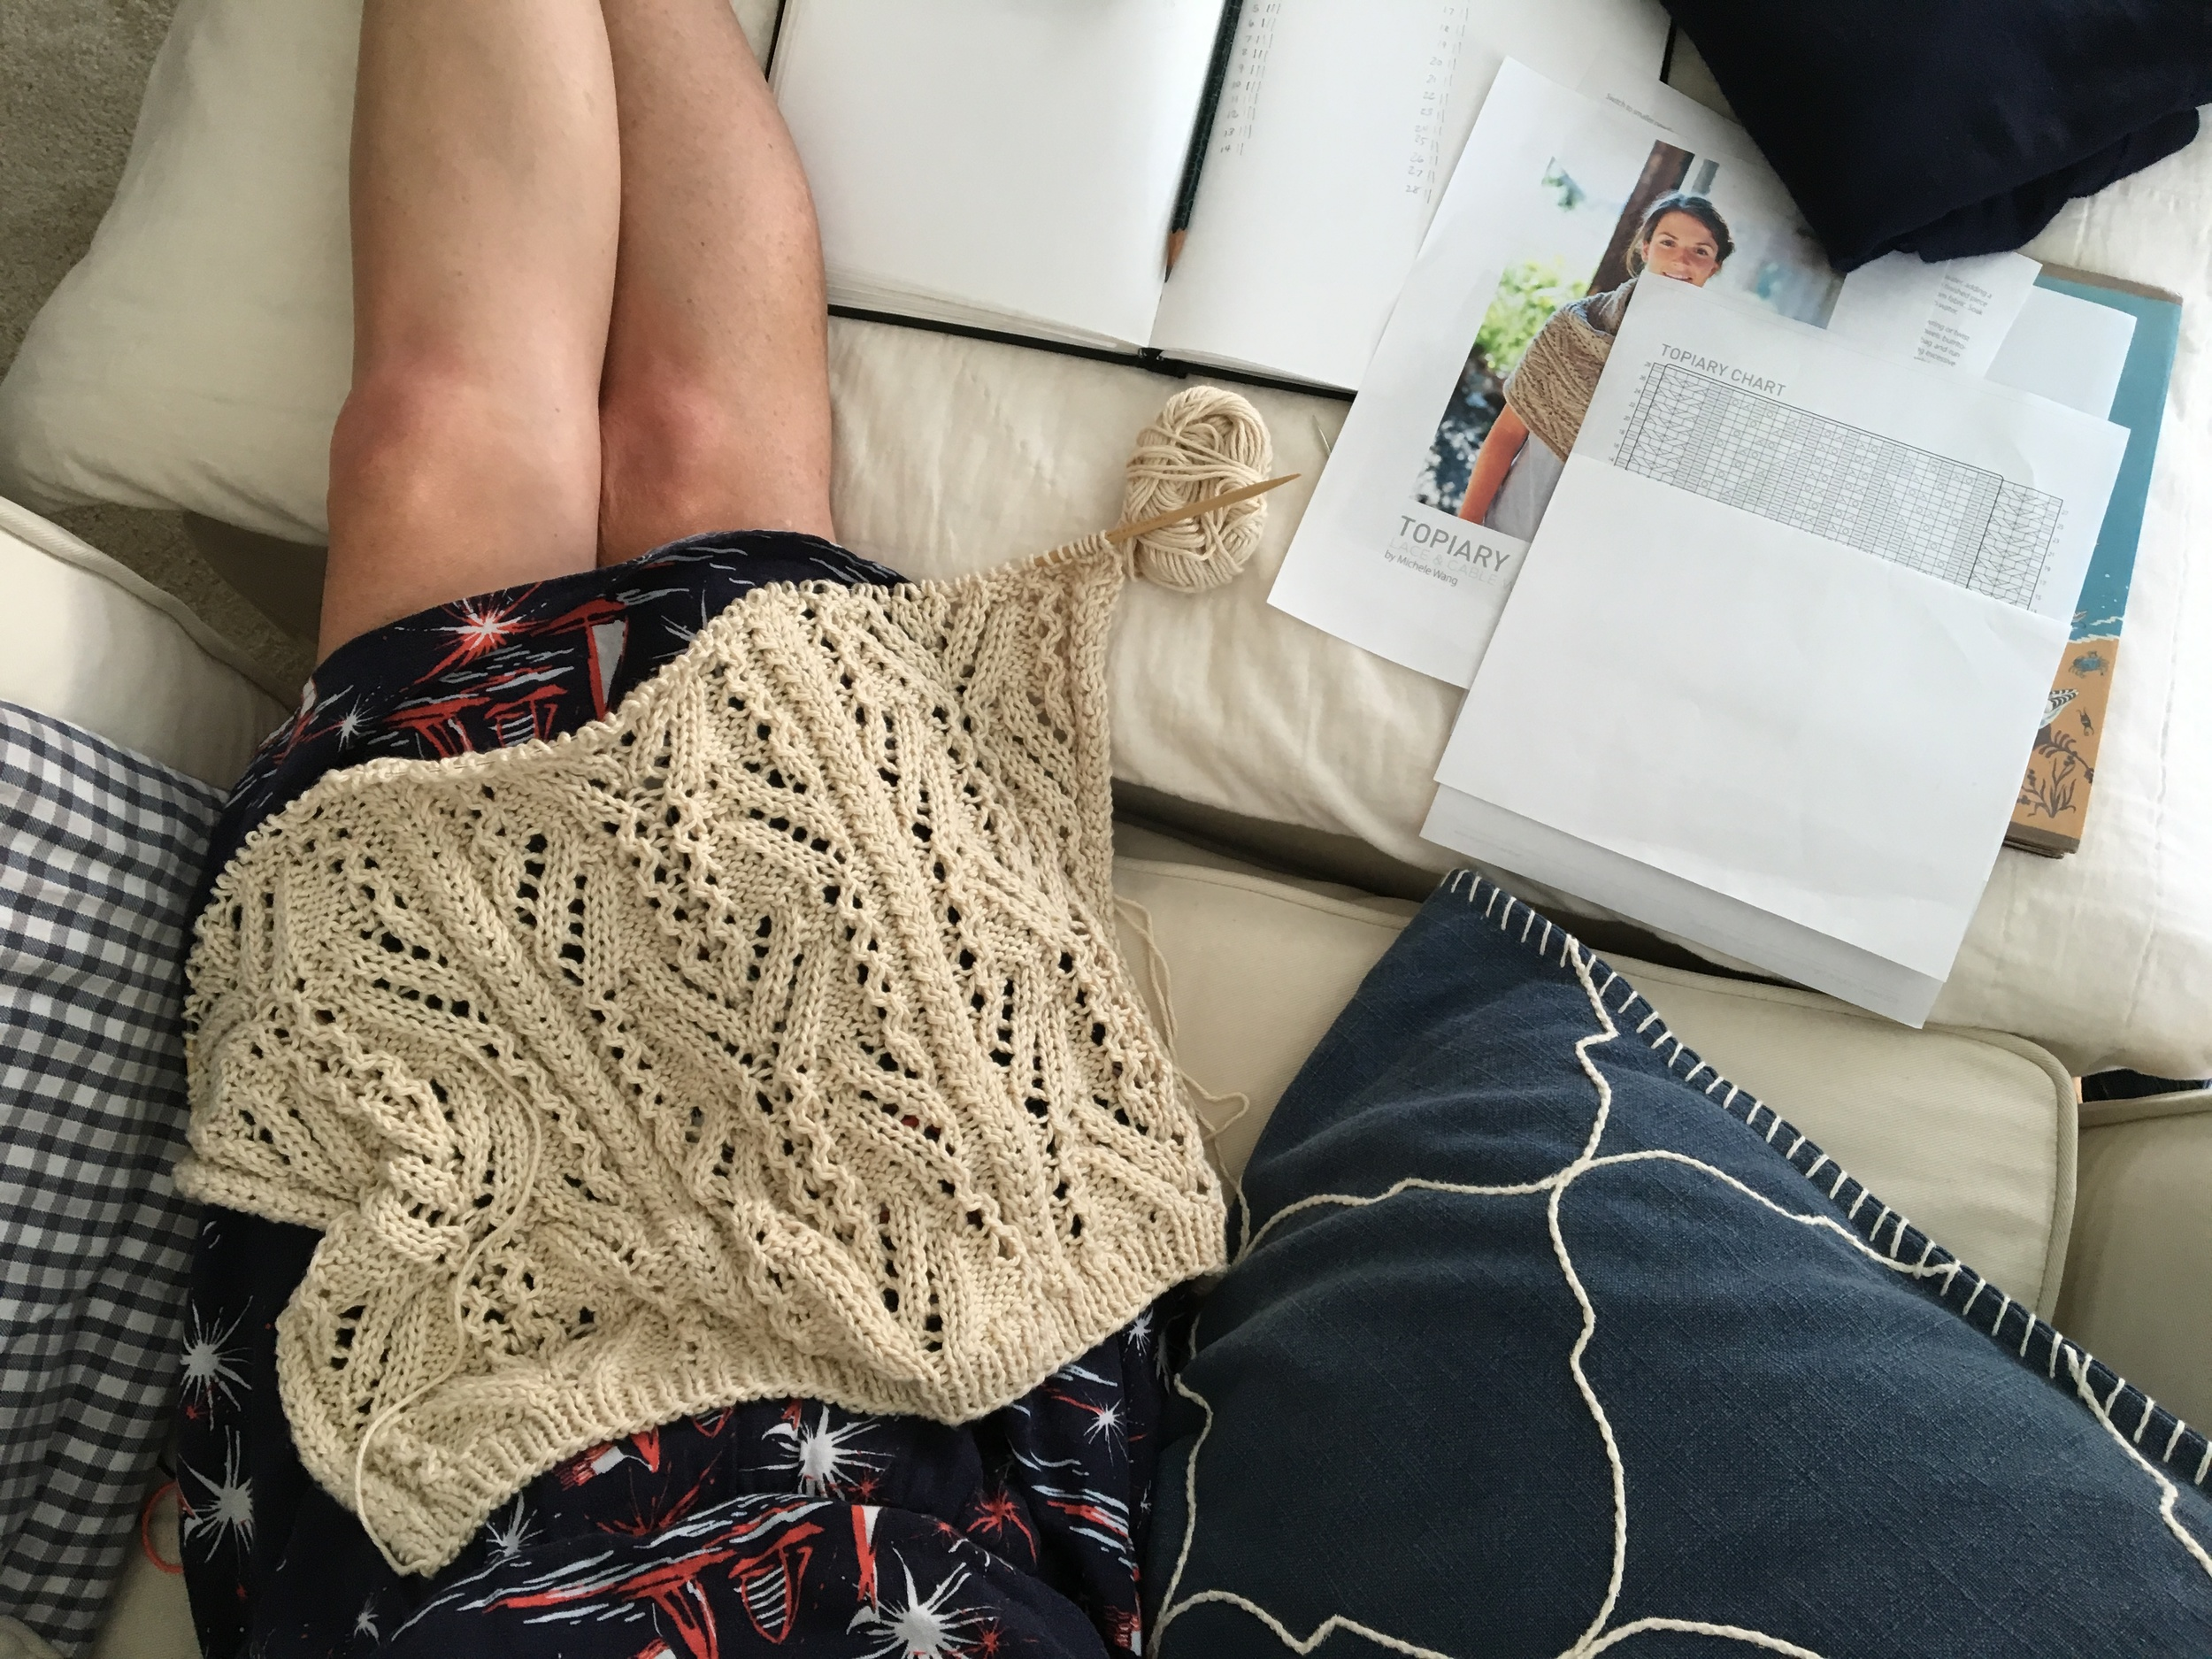 lace knitting